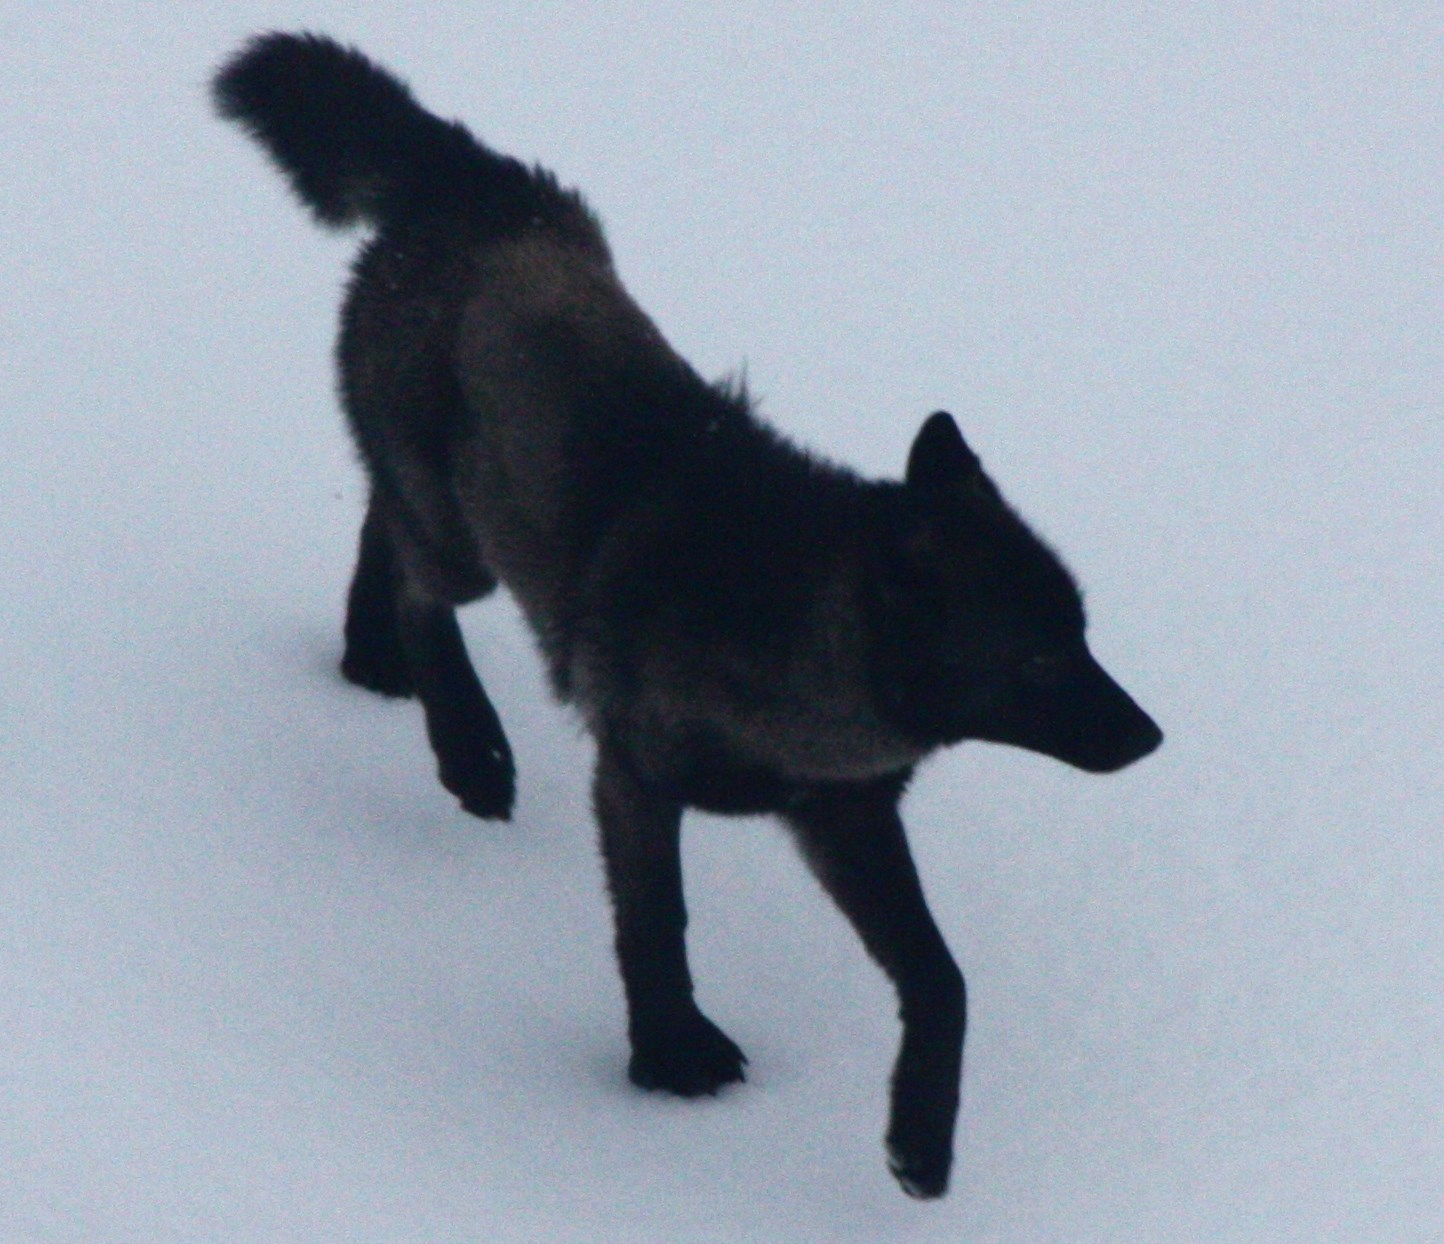 Board of Game OKs experimental wolf control programs for Southeast